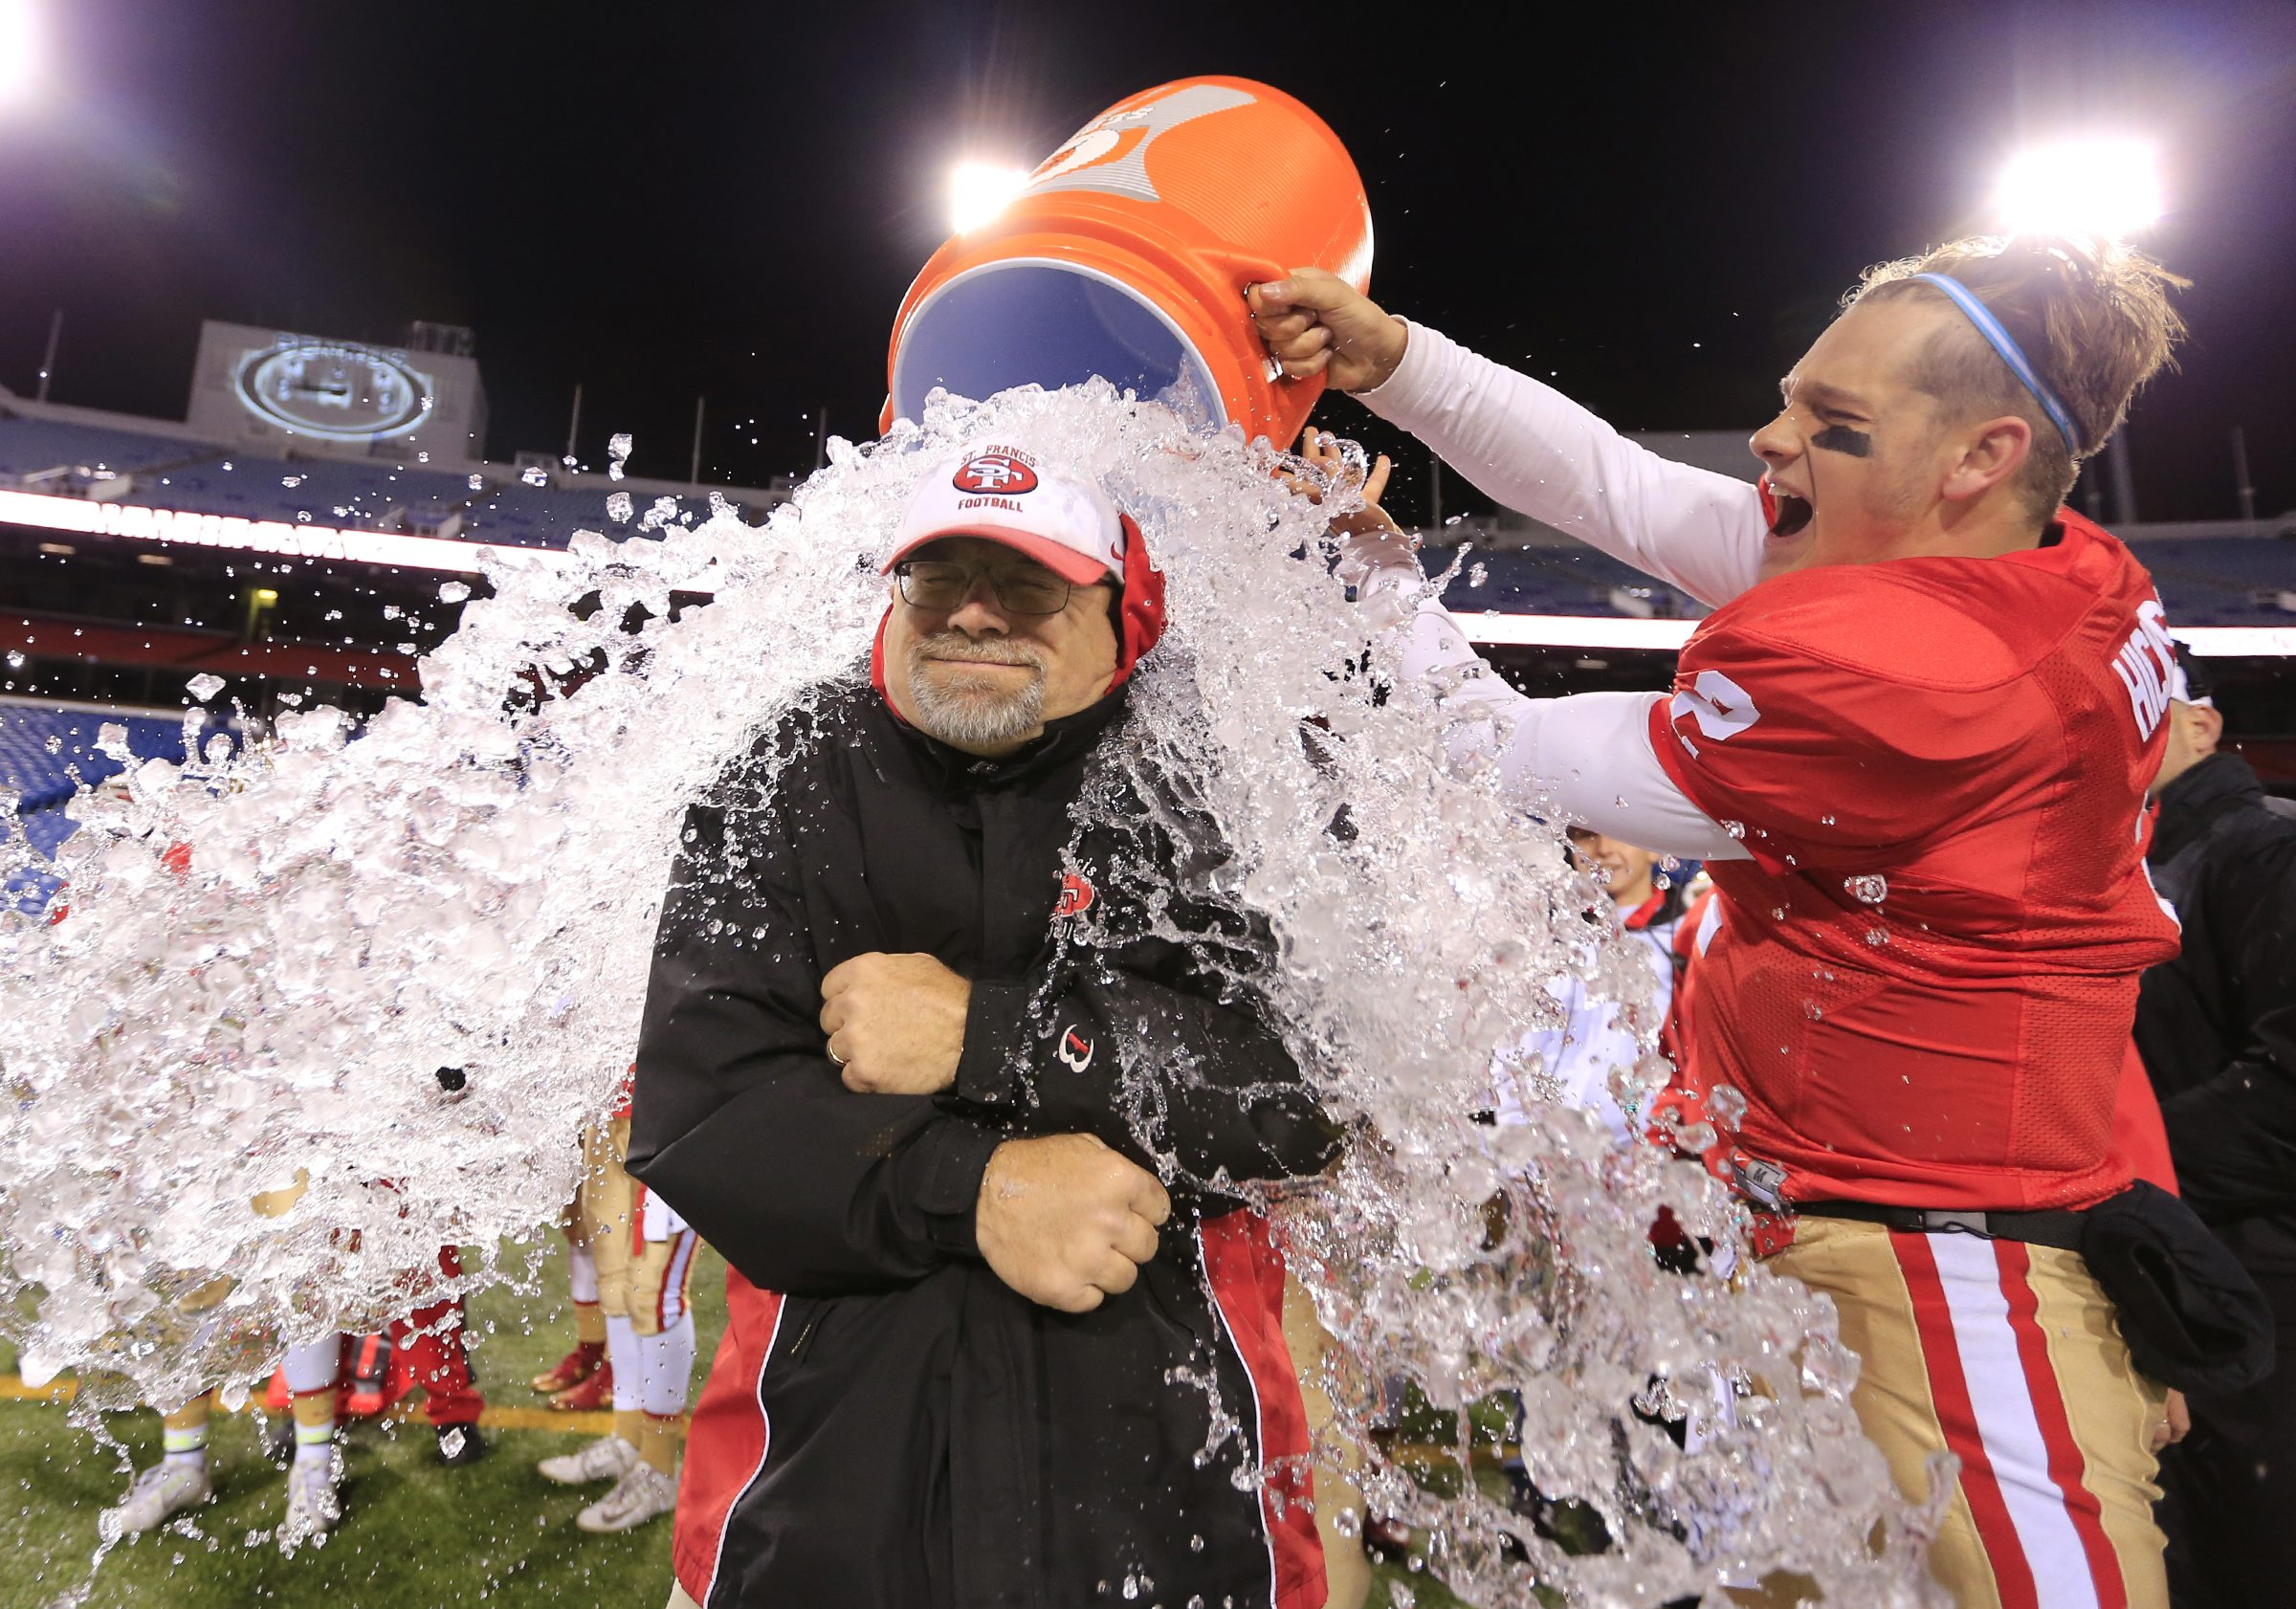 St. Francis coach Jerry Smith gets the celebratory Gatorade bucket shower following the Red Raiders' triumph over Canisius in the Monsignor Martin Association championship game last November at New Era Field, the former Ralph Wilson Stadium. (Harry Scull Jr./Buffalo News)